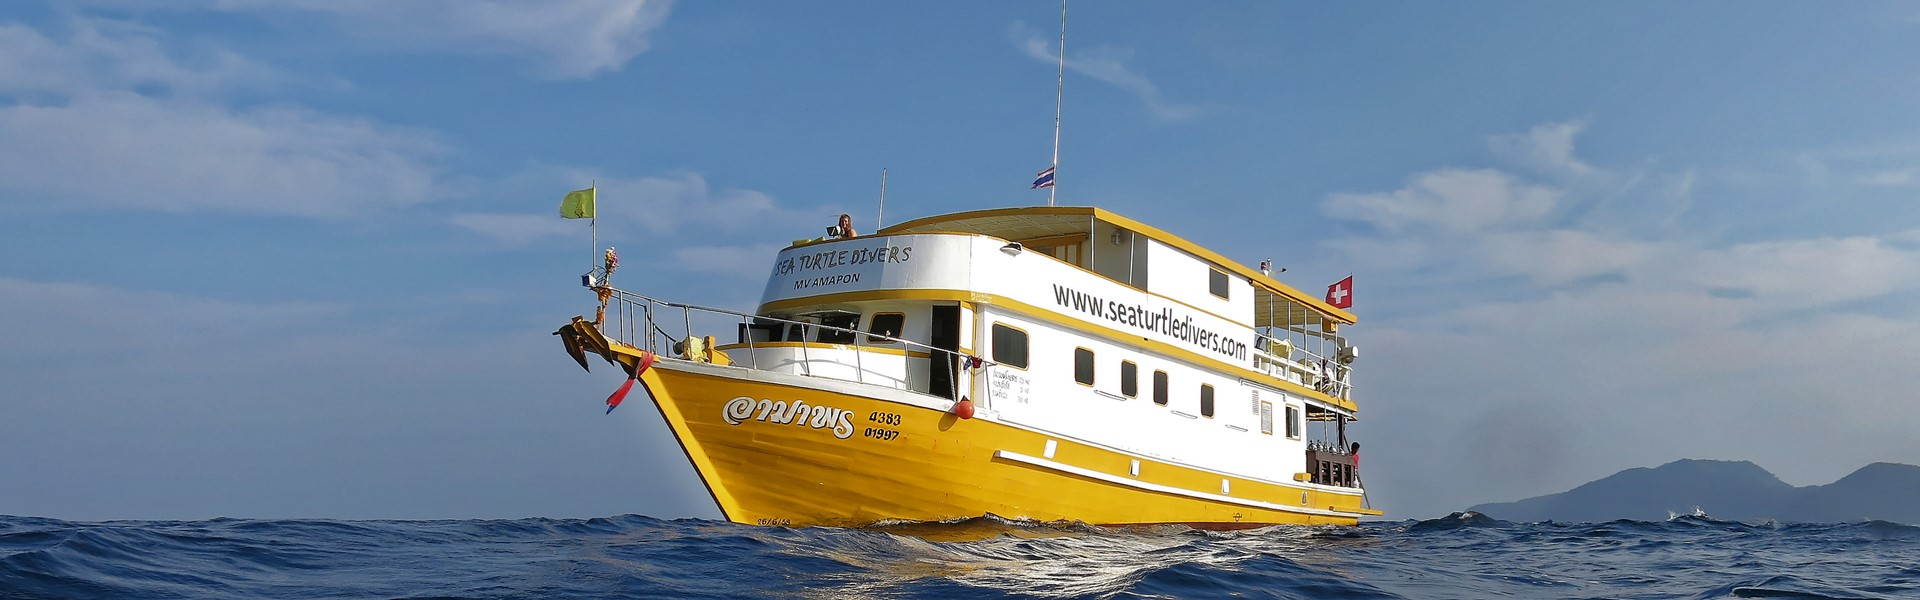 MV Amapon of the Sea Turtle Divers Khao Lak